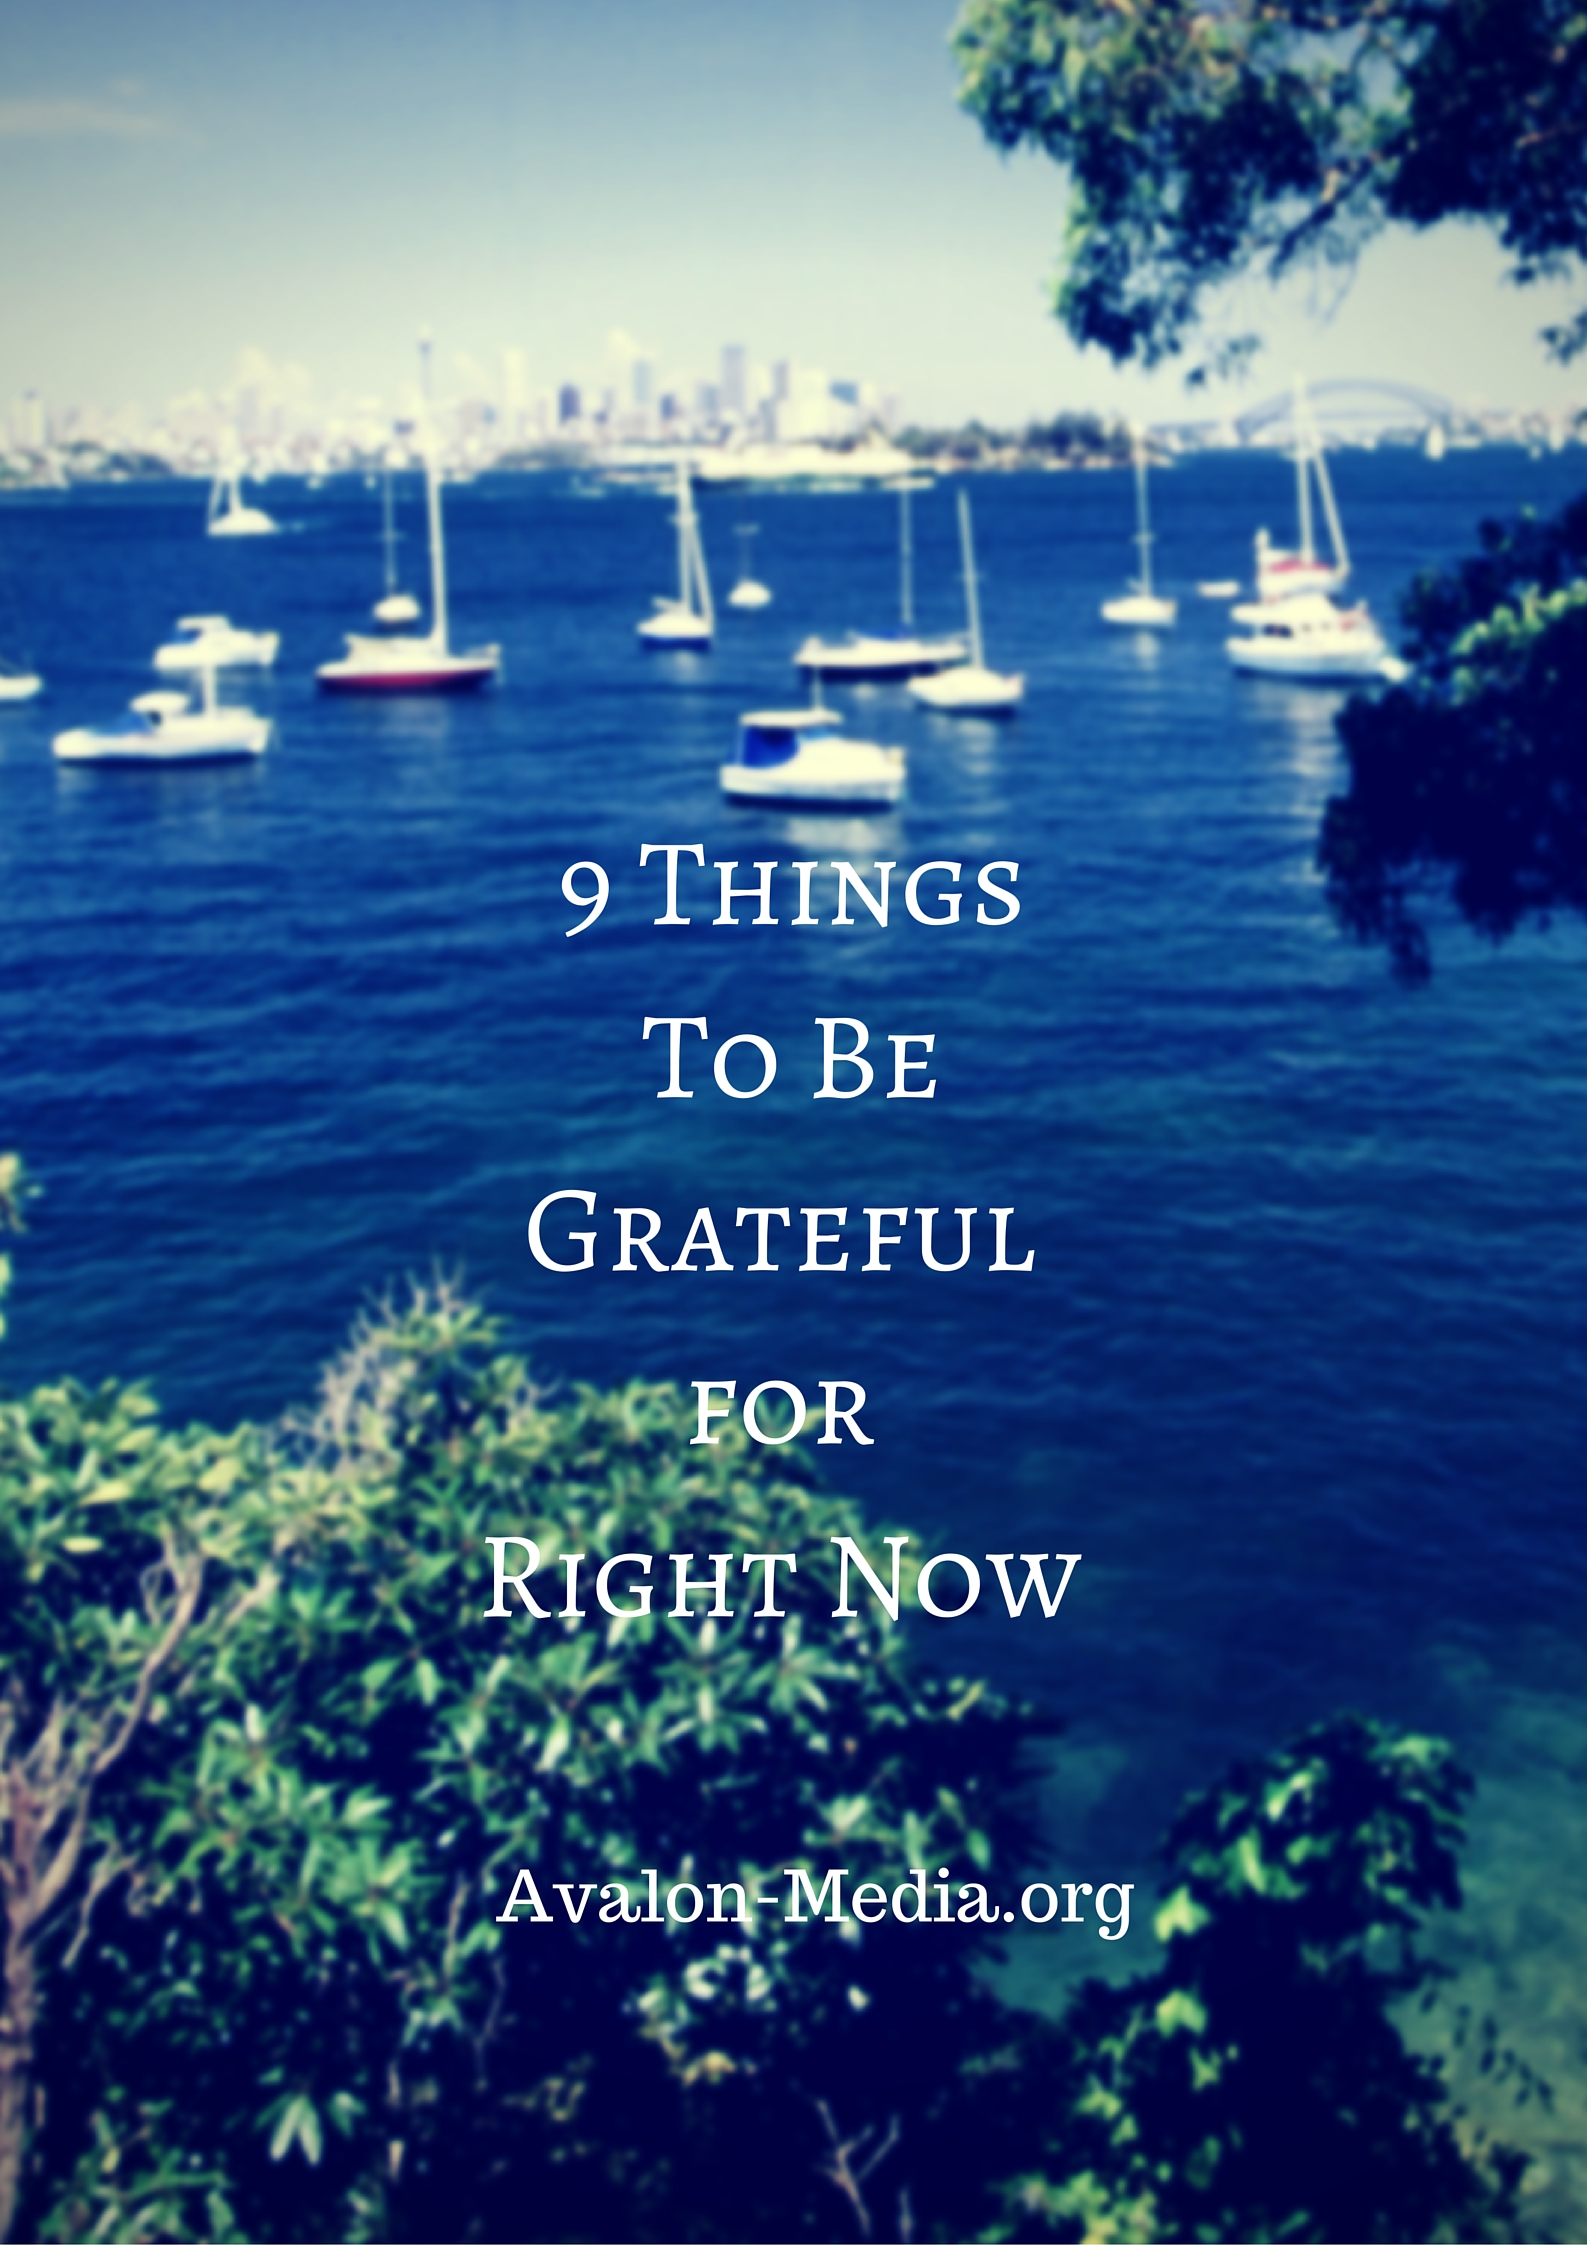 9 Things To Be Grateful For Right Now